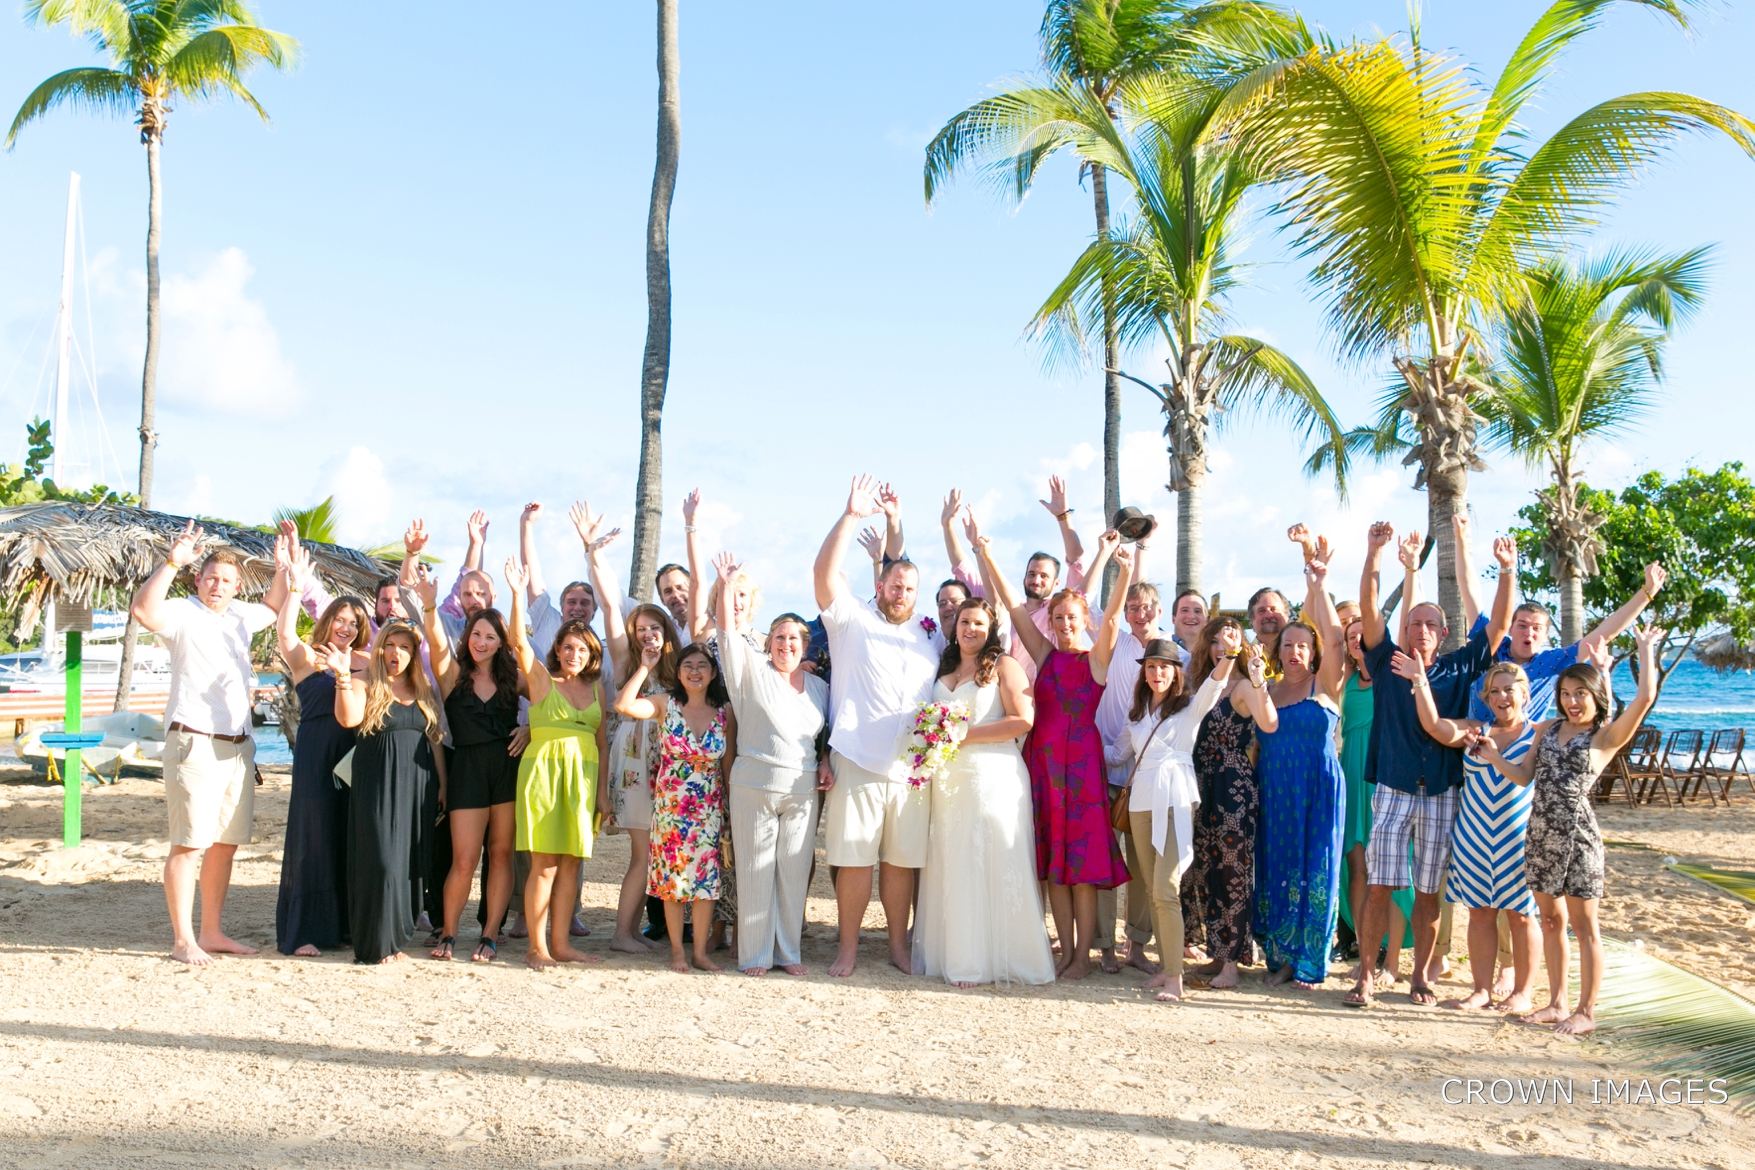 wedding_st_thomas_bolongo_beach_crown_images_0292.jpg